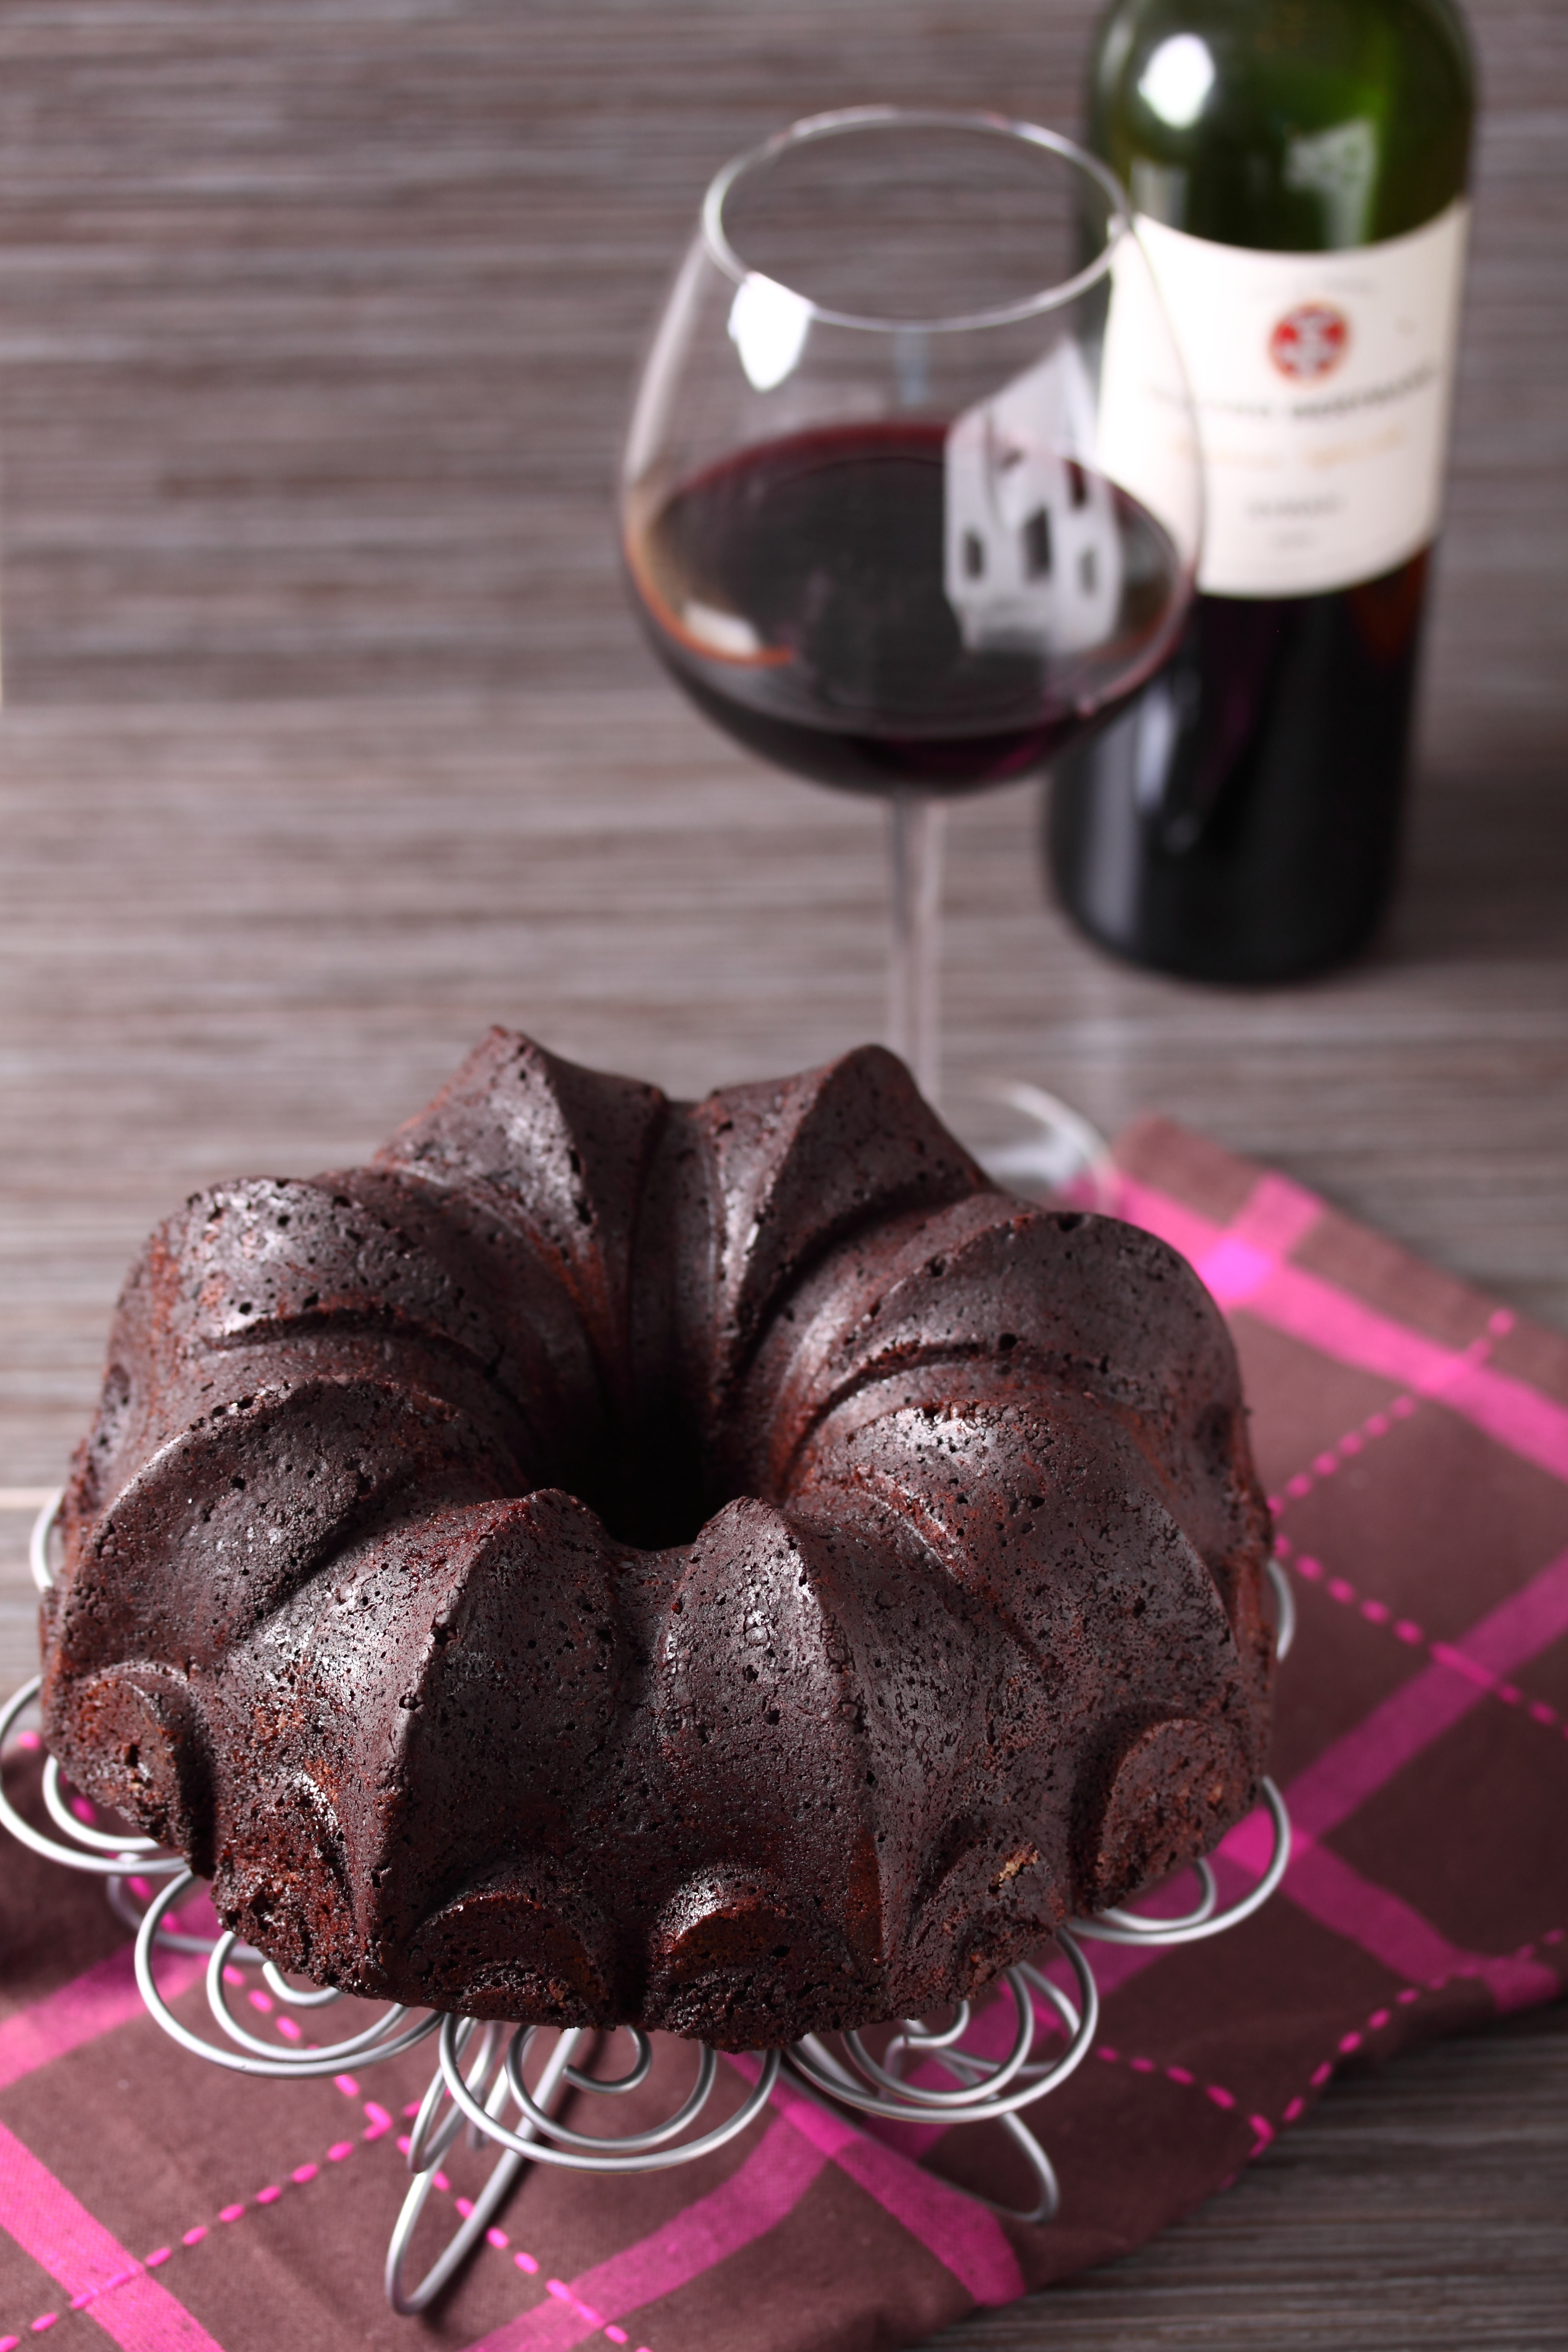 Delicious chocolate cake made with red wine